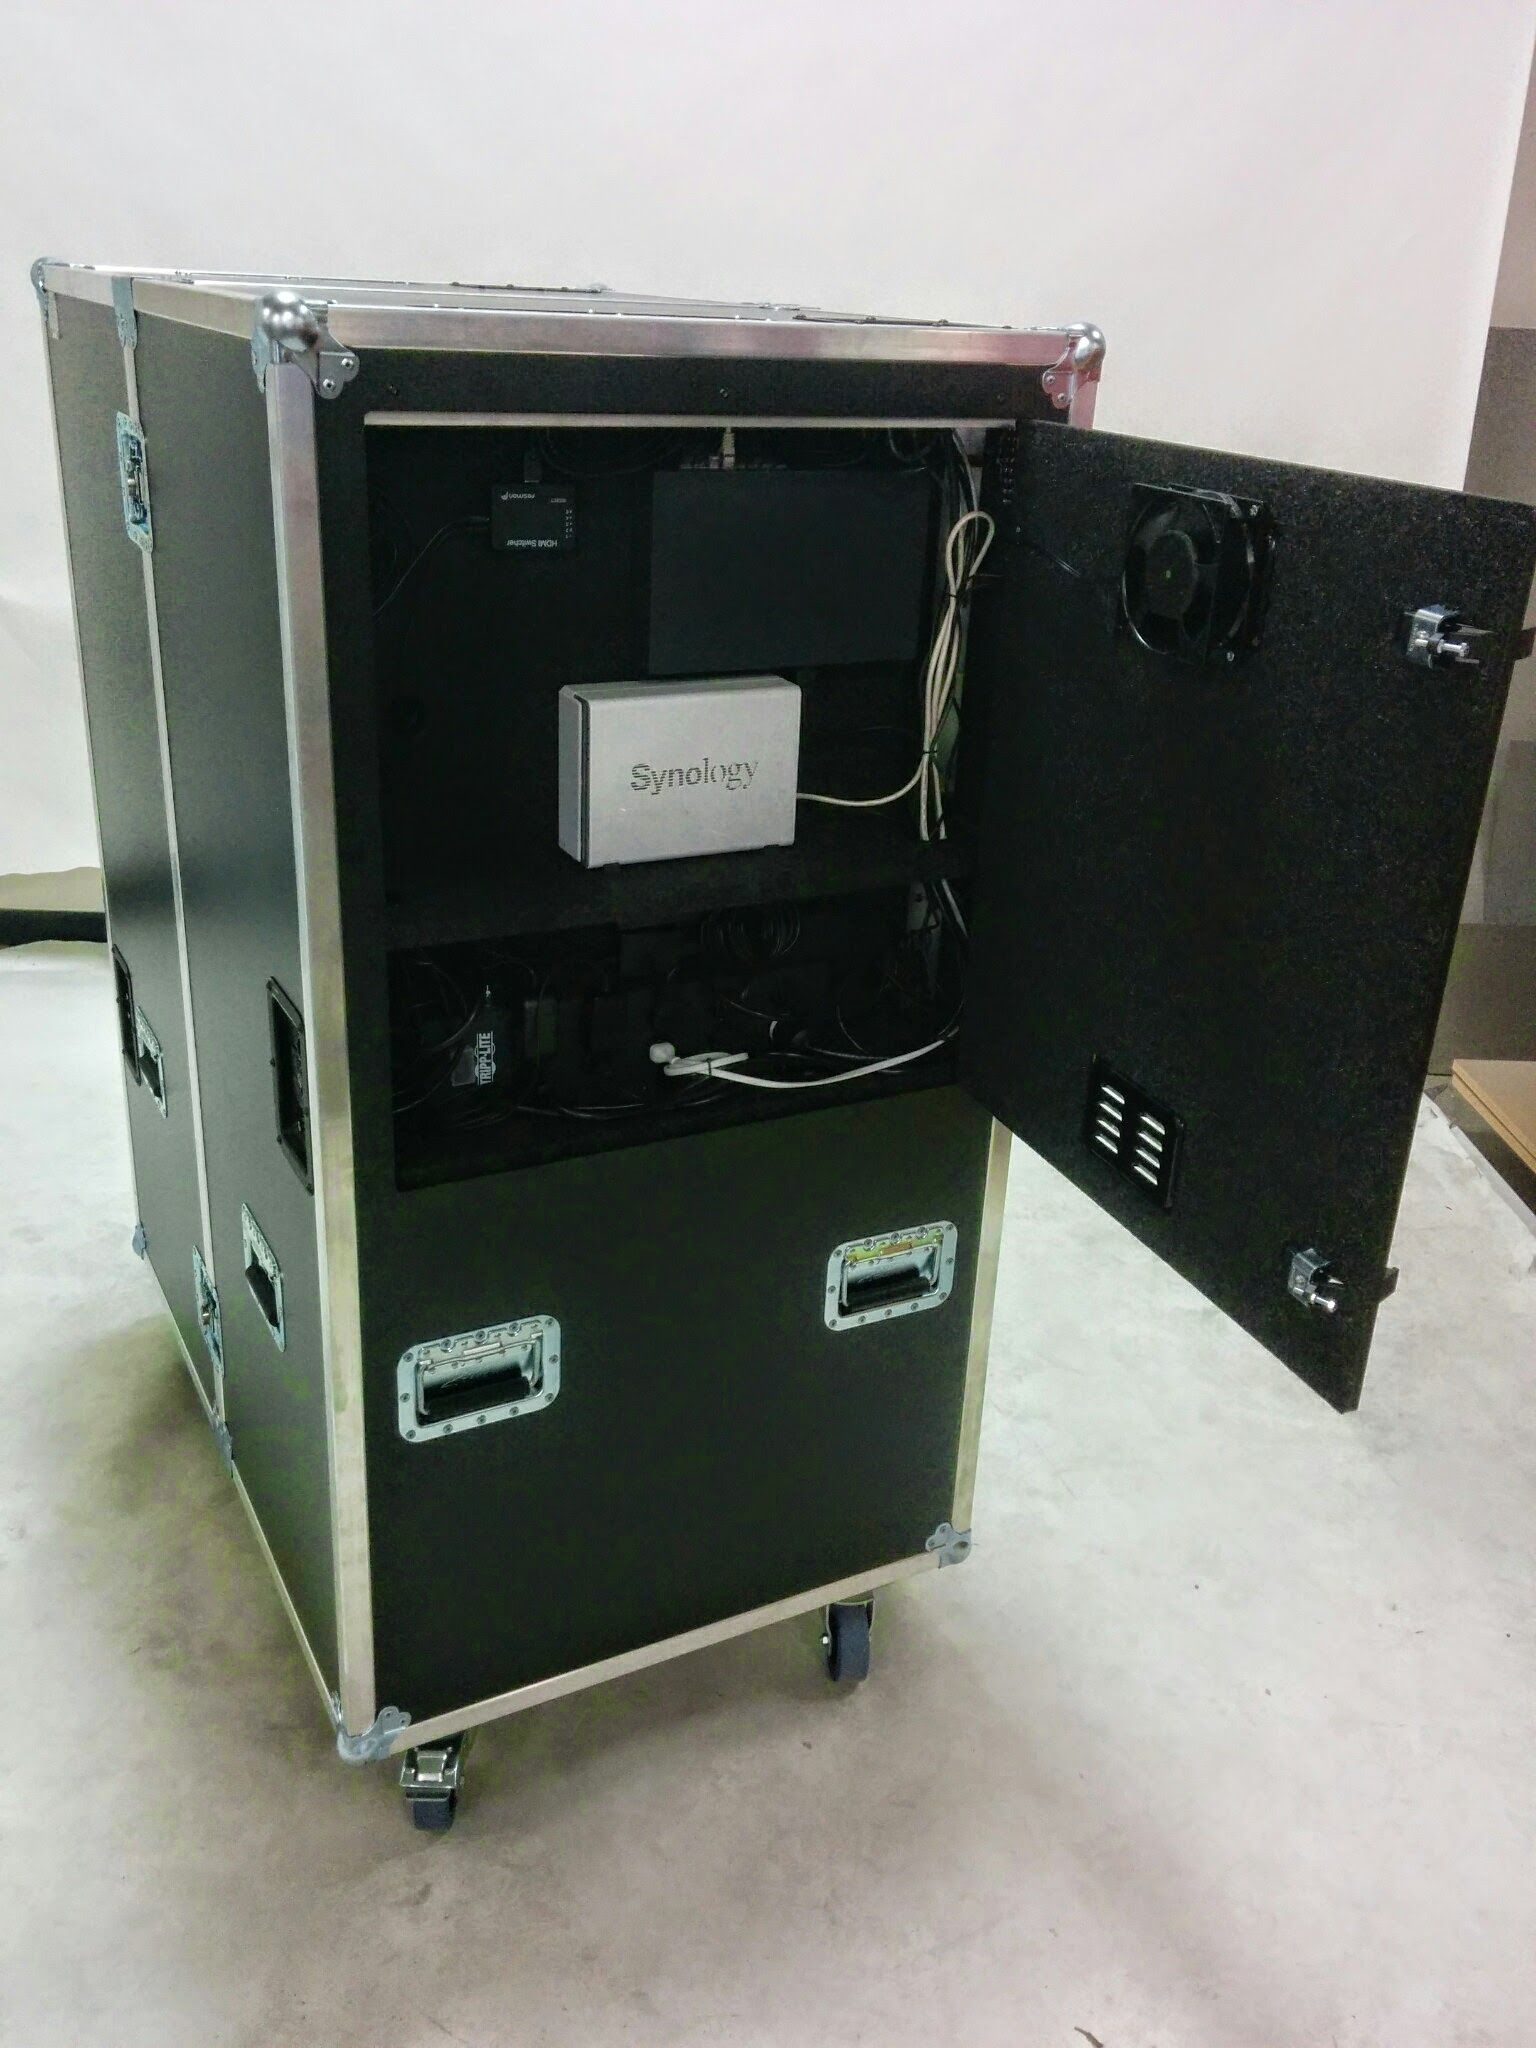 Sators Workbox Production Office Road Case Inside The